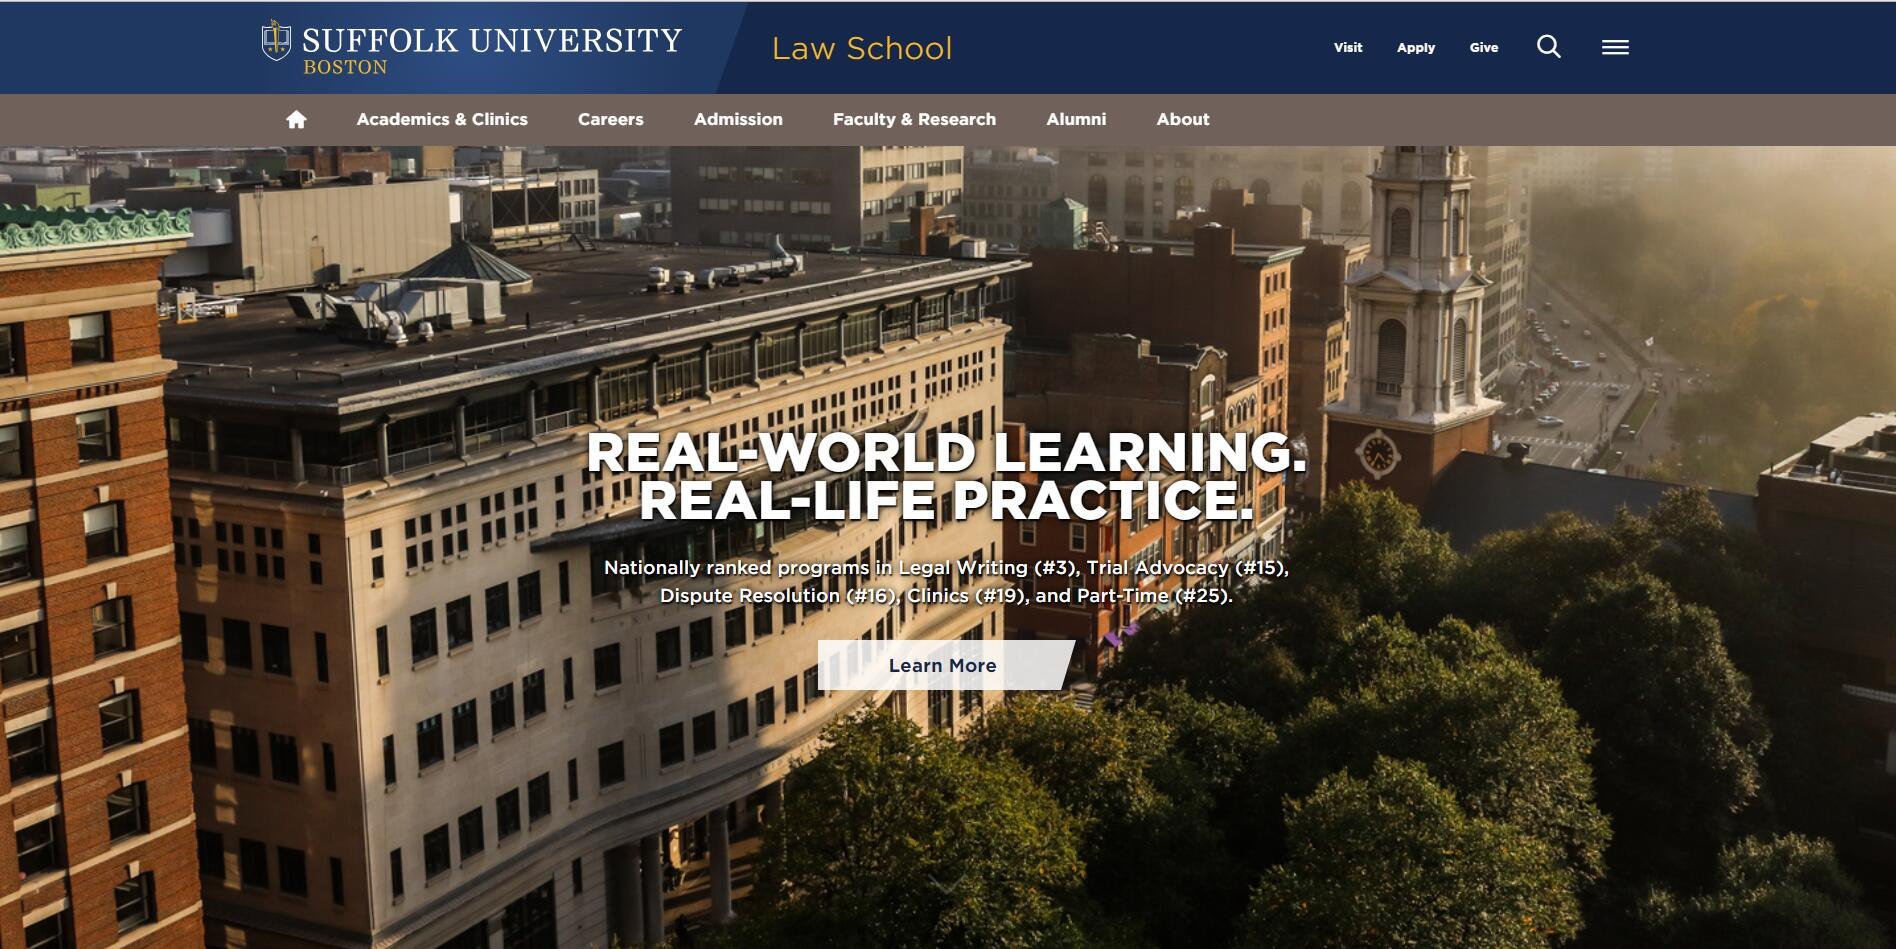 The School of Law at Suffolk University